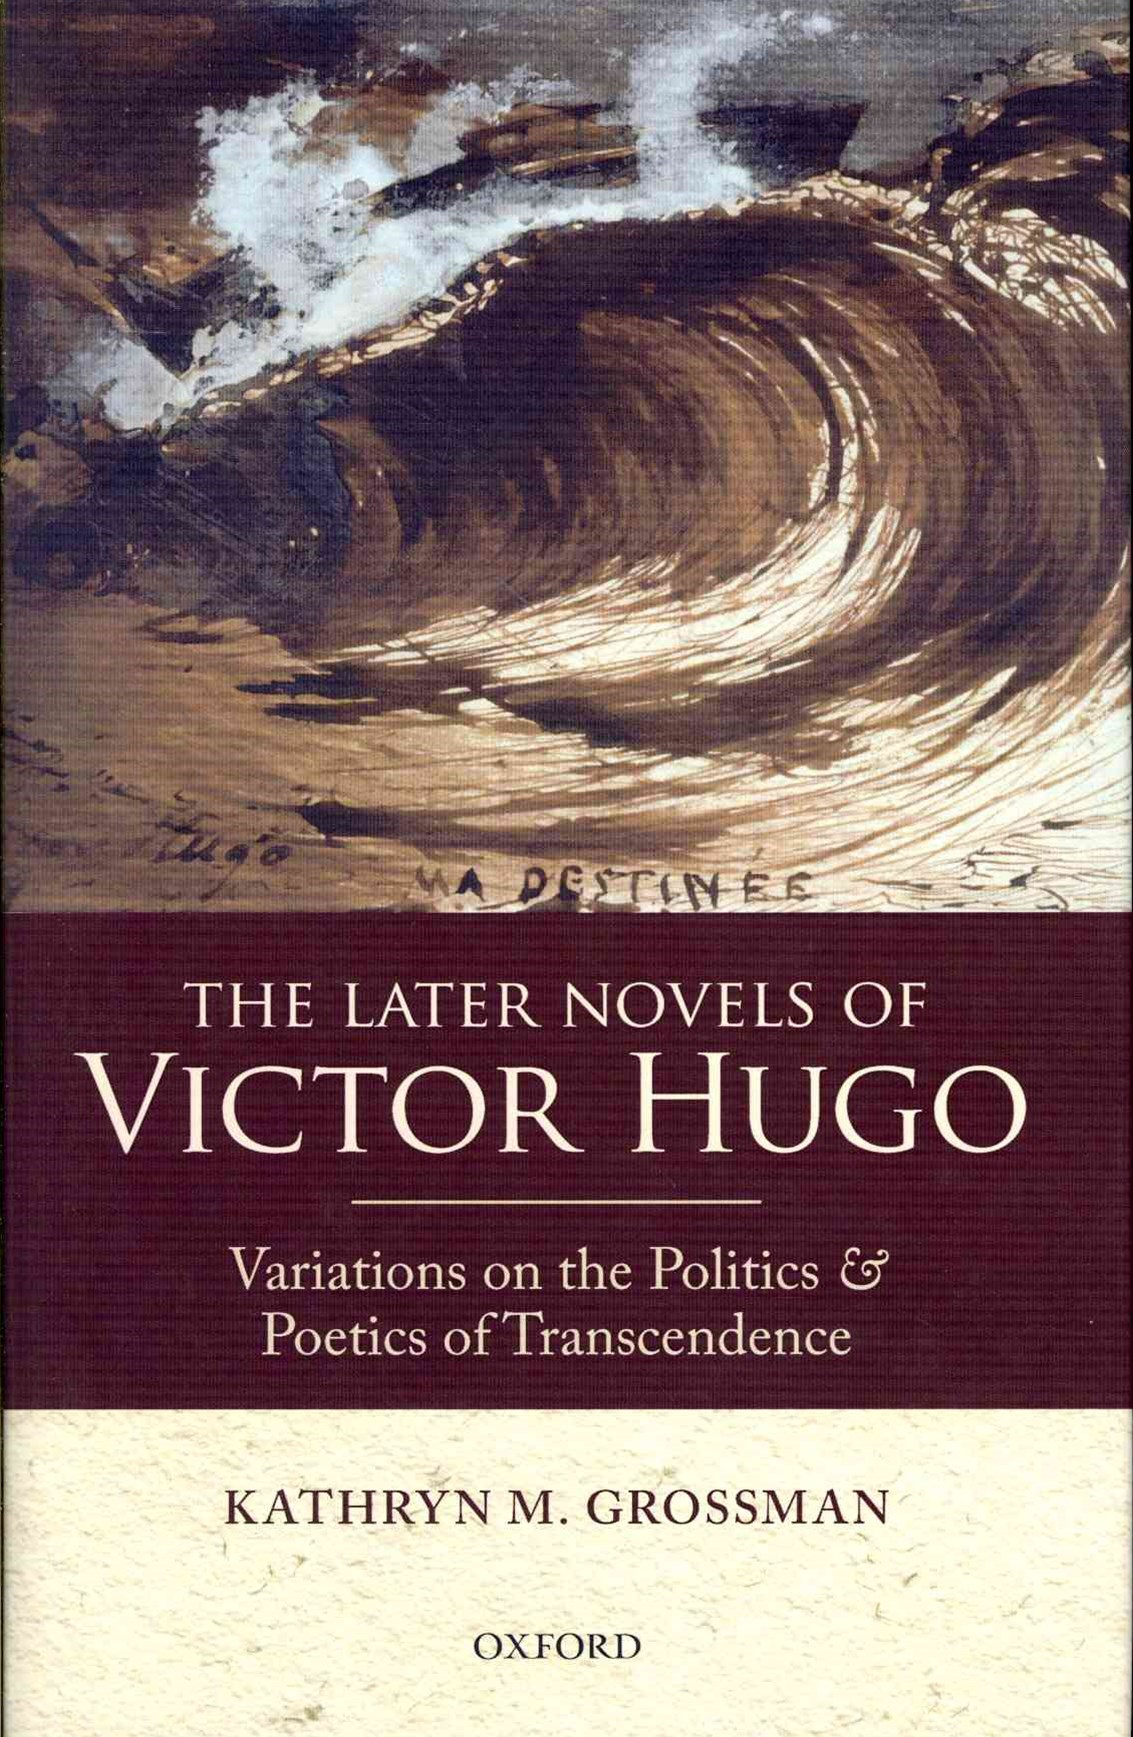 The Later Novels of Victor Hugo